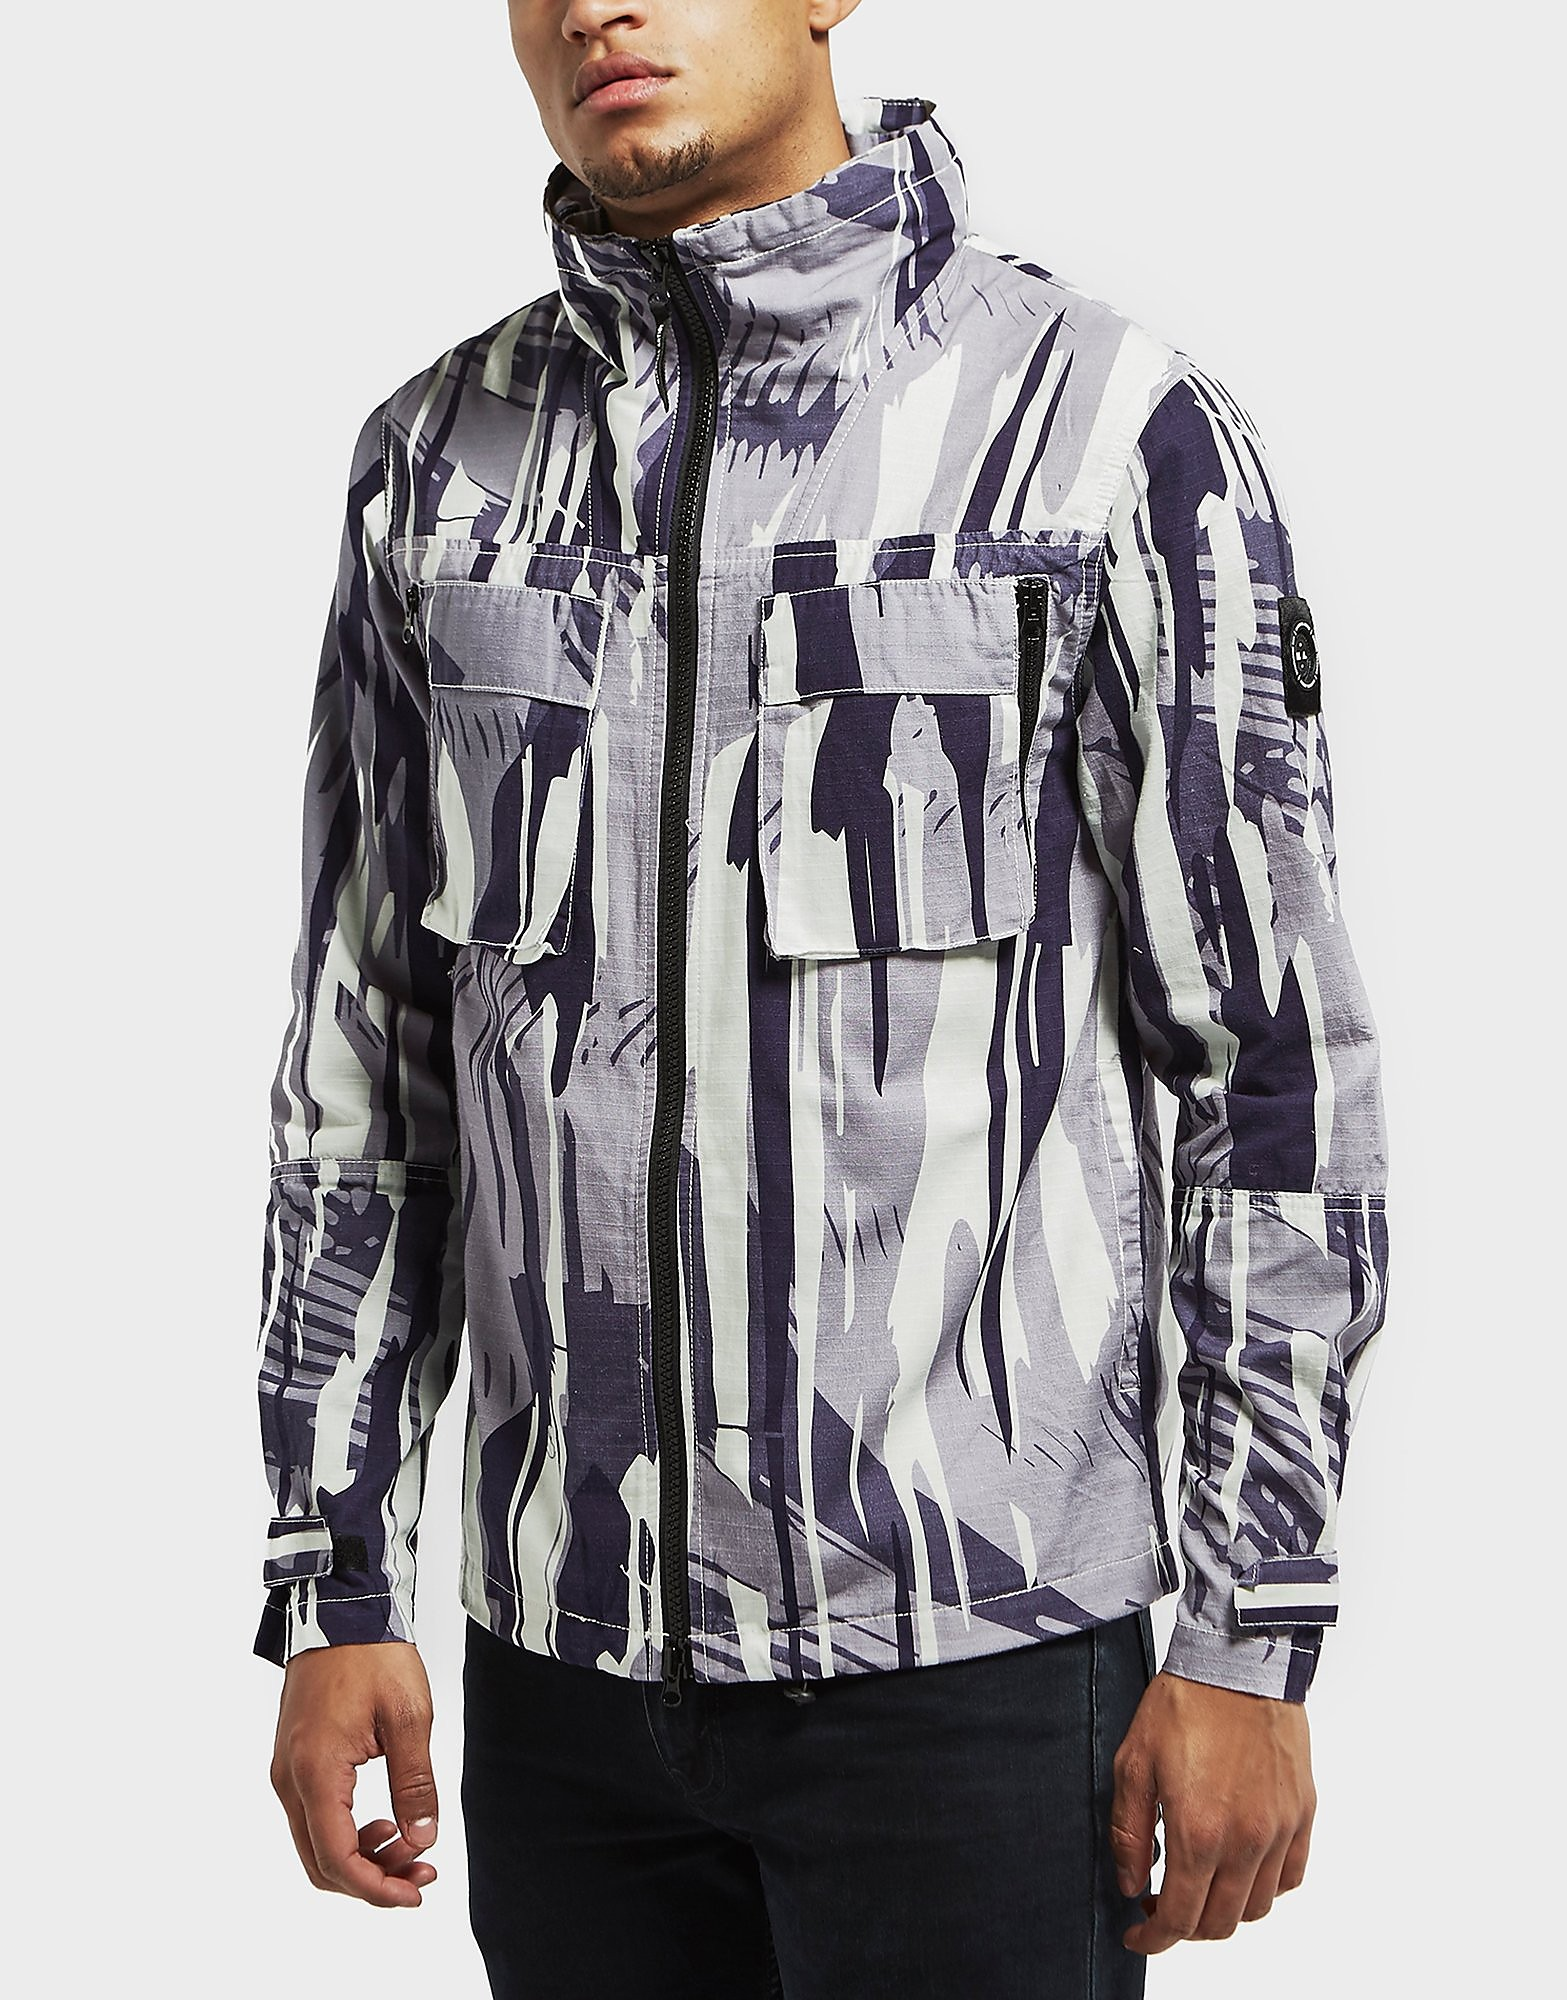 Marshall Artist All Over Print Ripstop Jacket